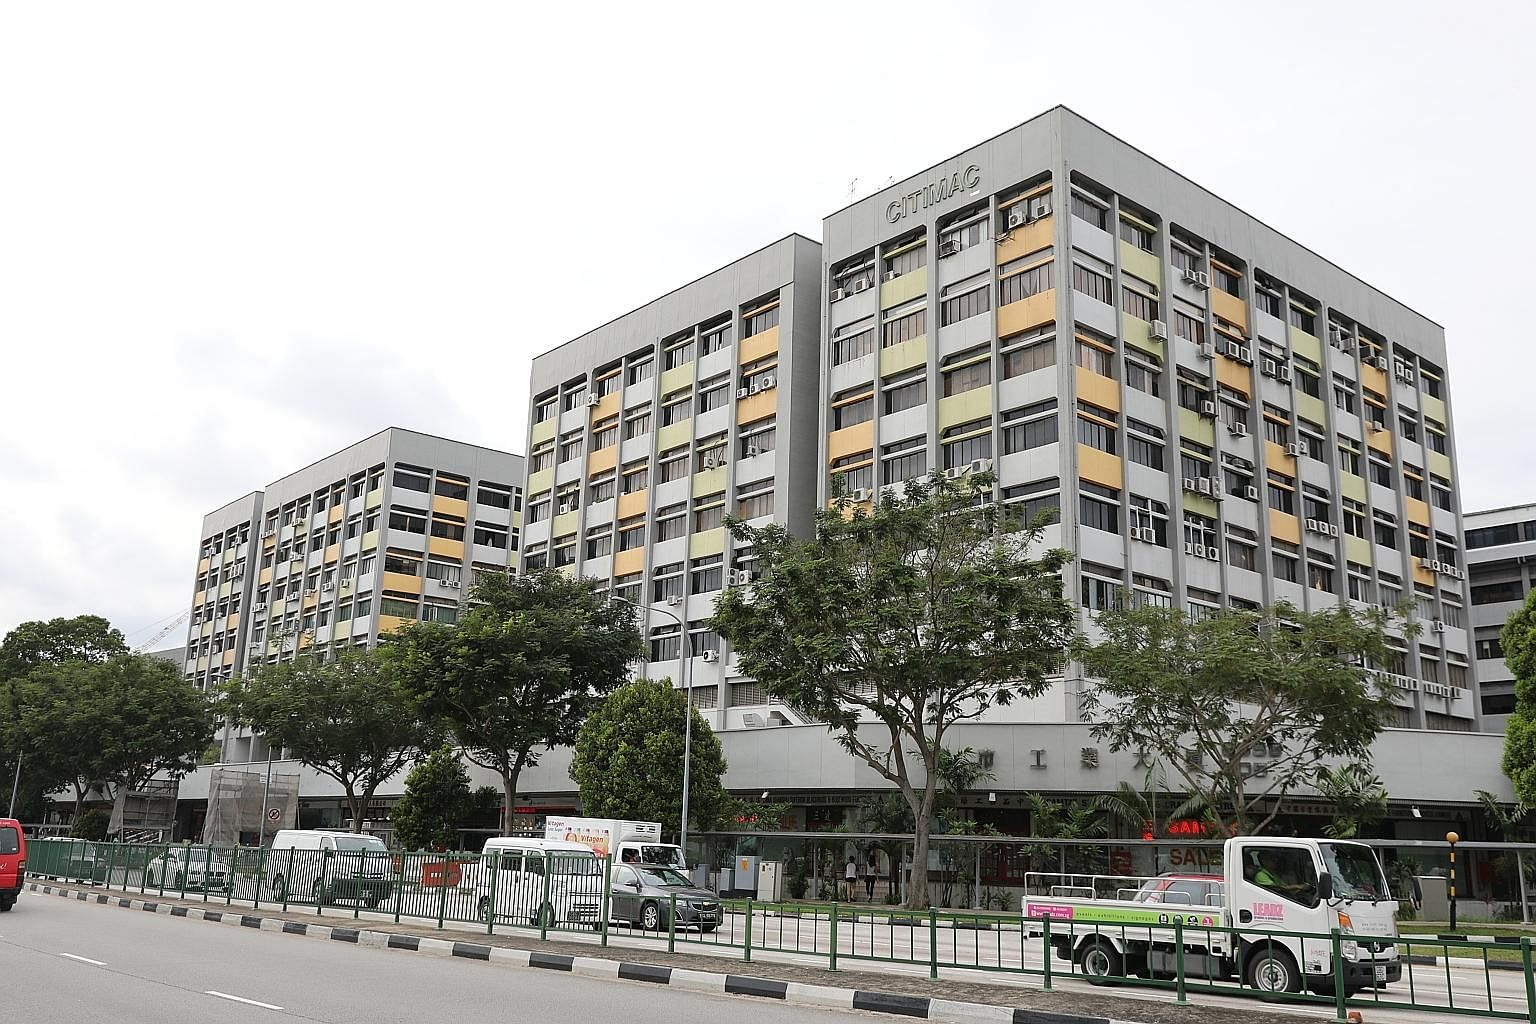 The eight-floor Citimac Industrial Complex is a freehold building near Tai Seng MRT comprising a factory, warehouse and showroom units. It was sold to a foreign developer last year.